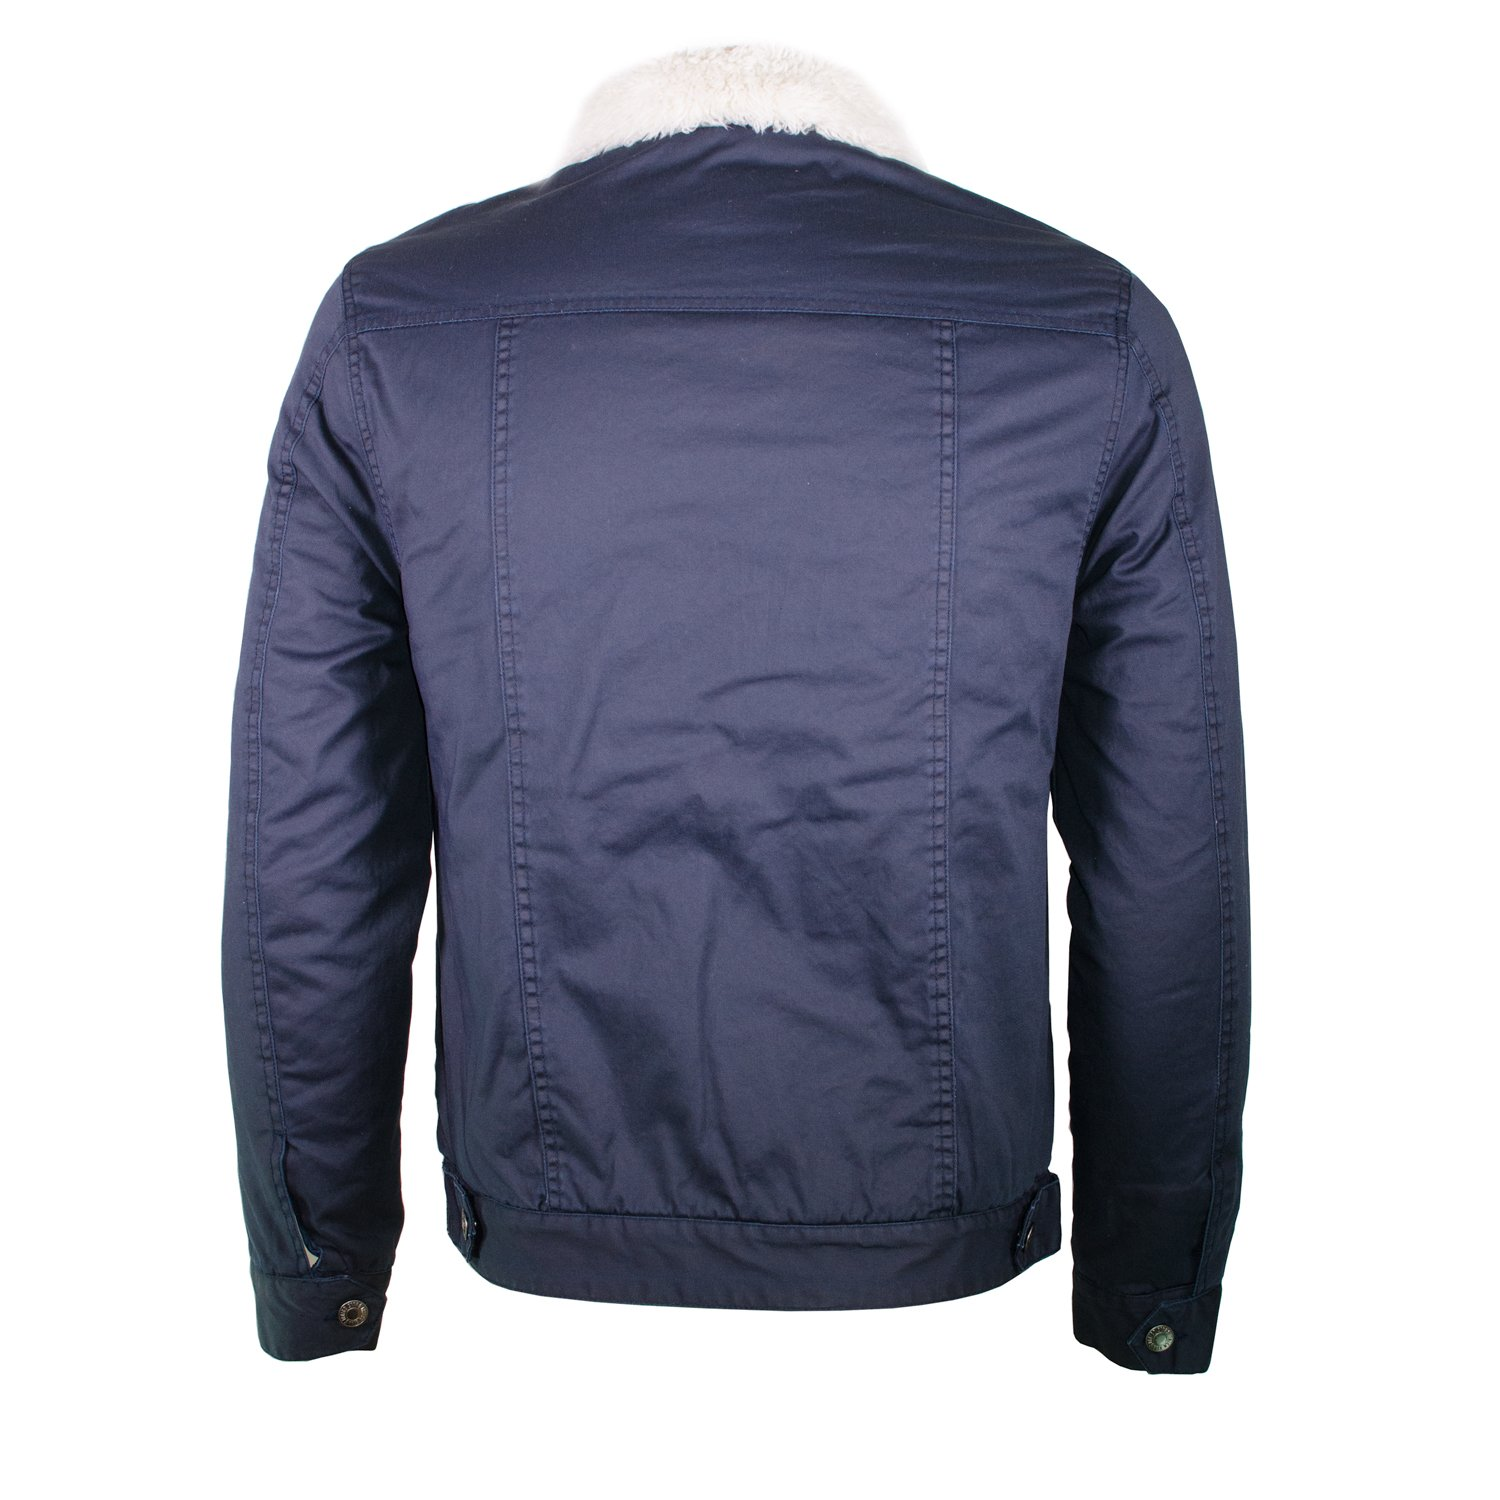 addc09d10 Amazon.com: Alta Men's Sherpa-Lined Work Twill Jacket Button Up ...